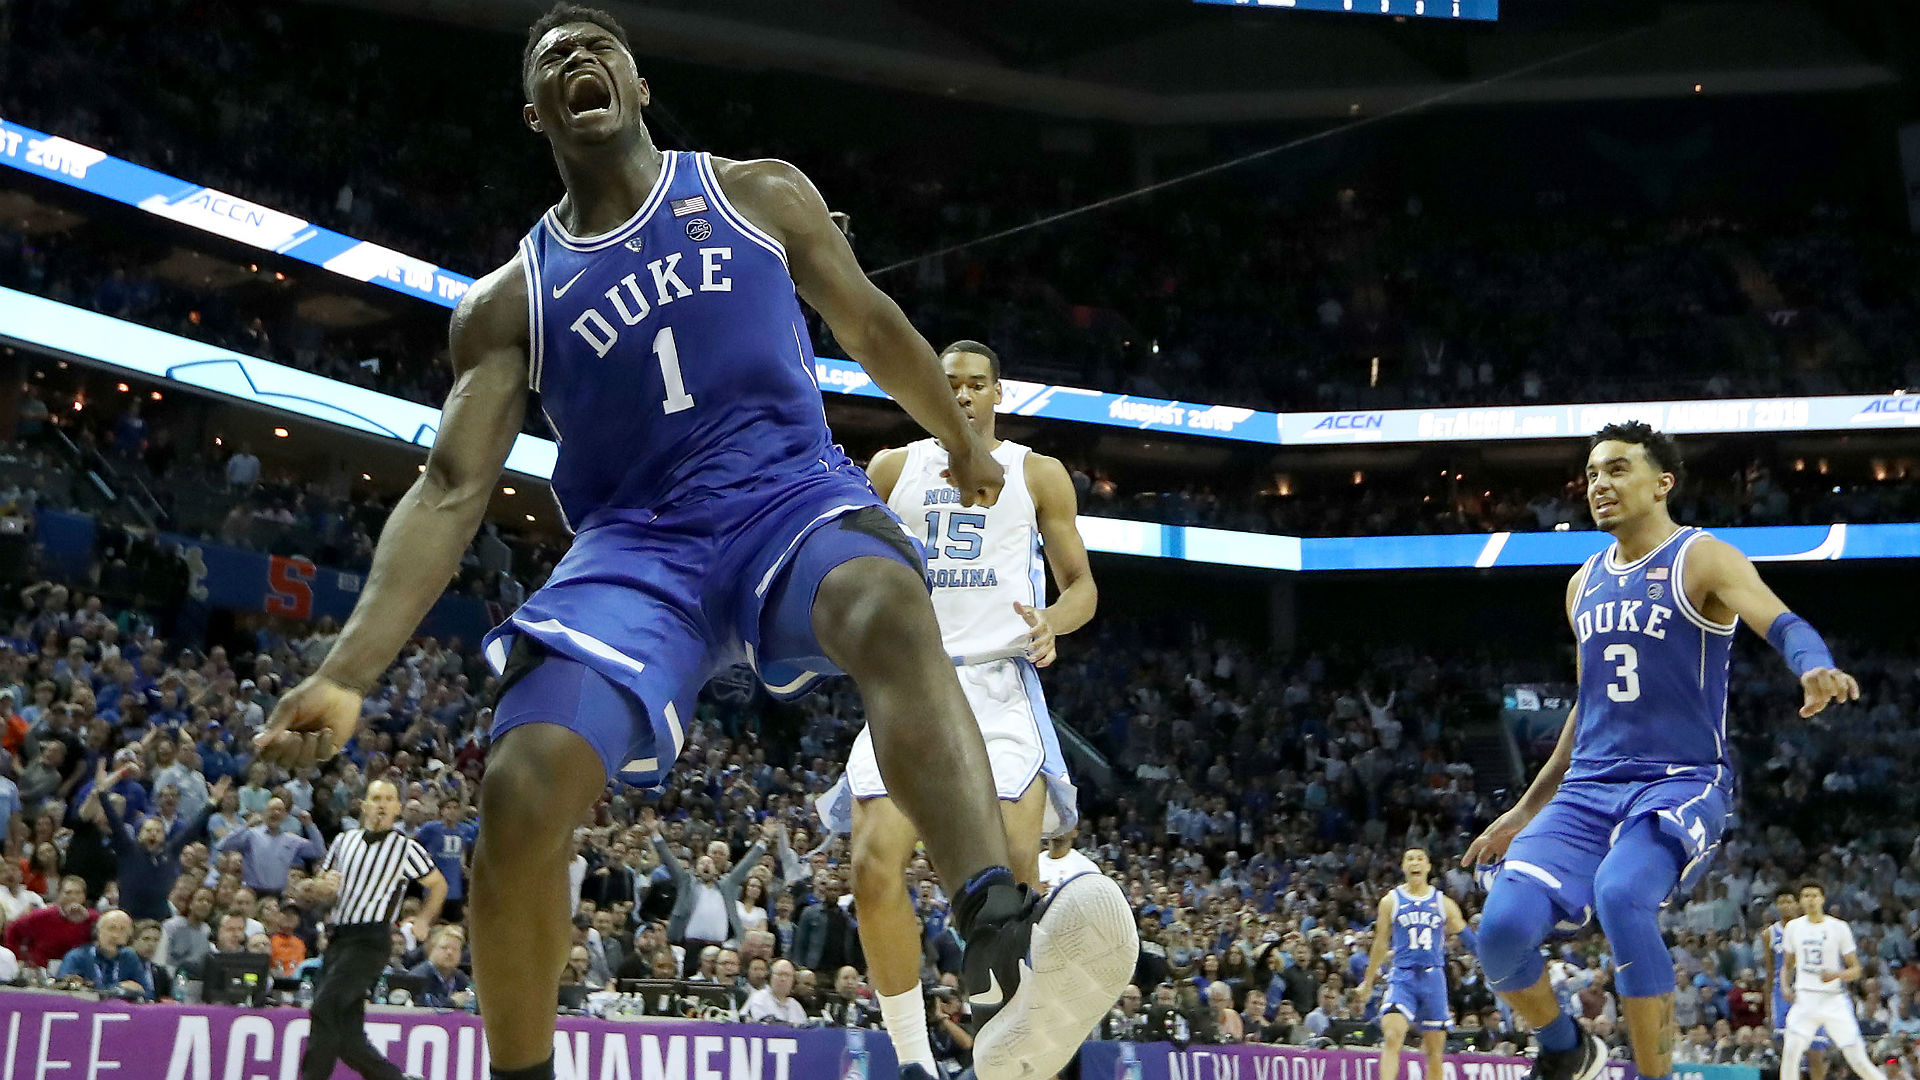 Duke Basketball: Blue Devils defeat North Carolina in an instant classic